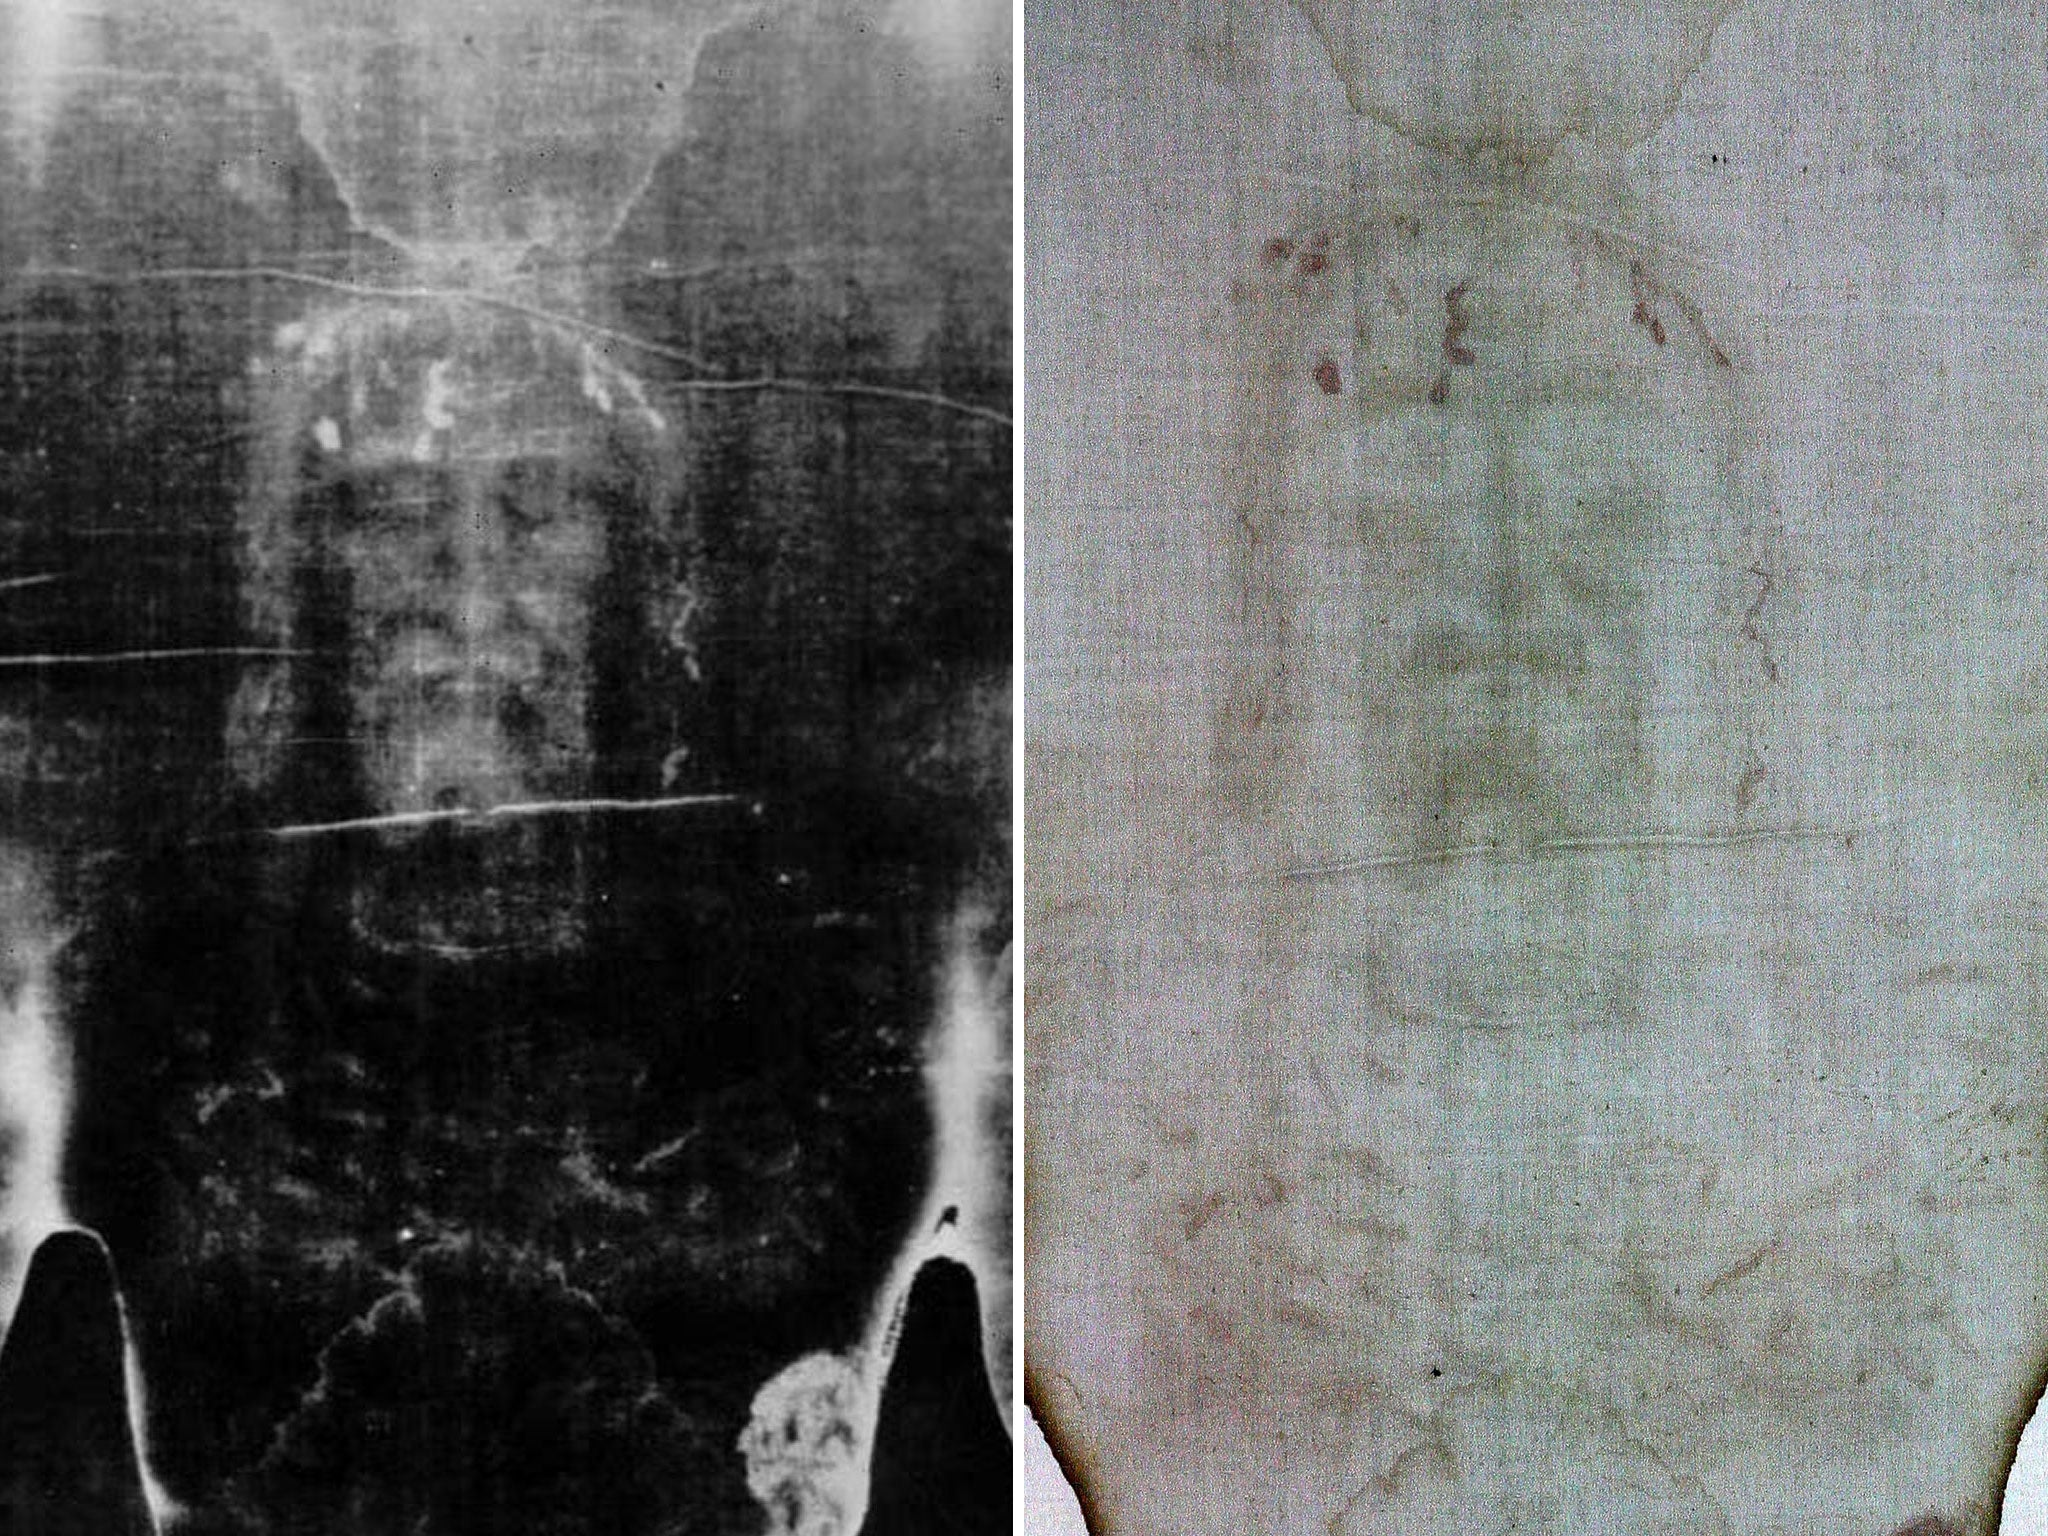 k 5031 shroud of turin - photo#4